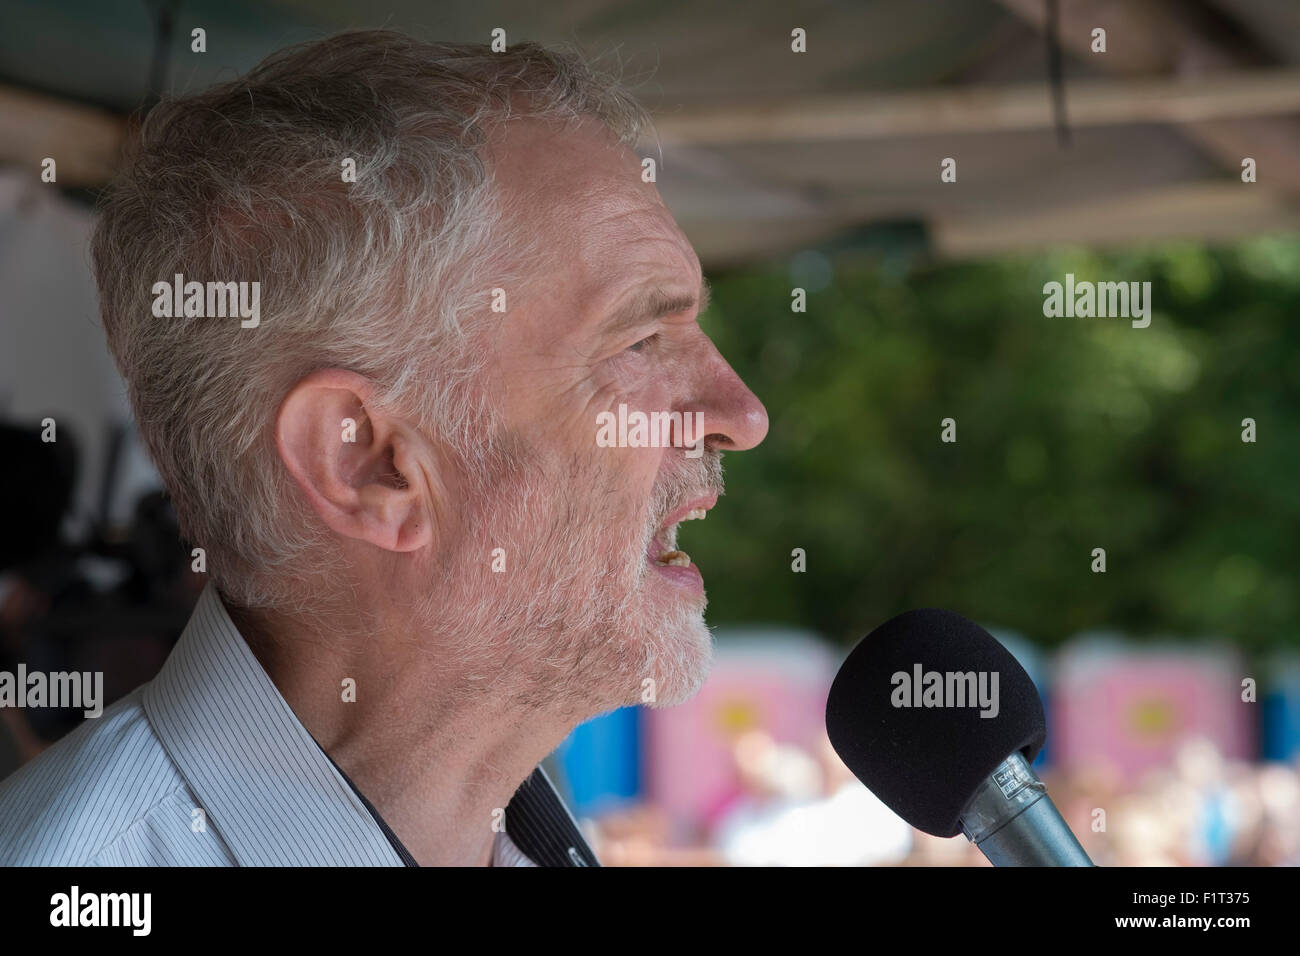 Norfolk, UK. 6th September, 2015. Labour Party leadership candidate, Jeremy Corbyn MP,  at the 2015 Burston Strike - Stock Image